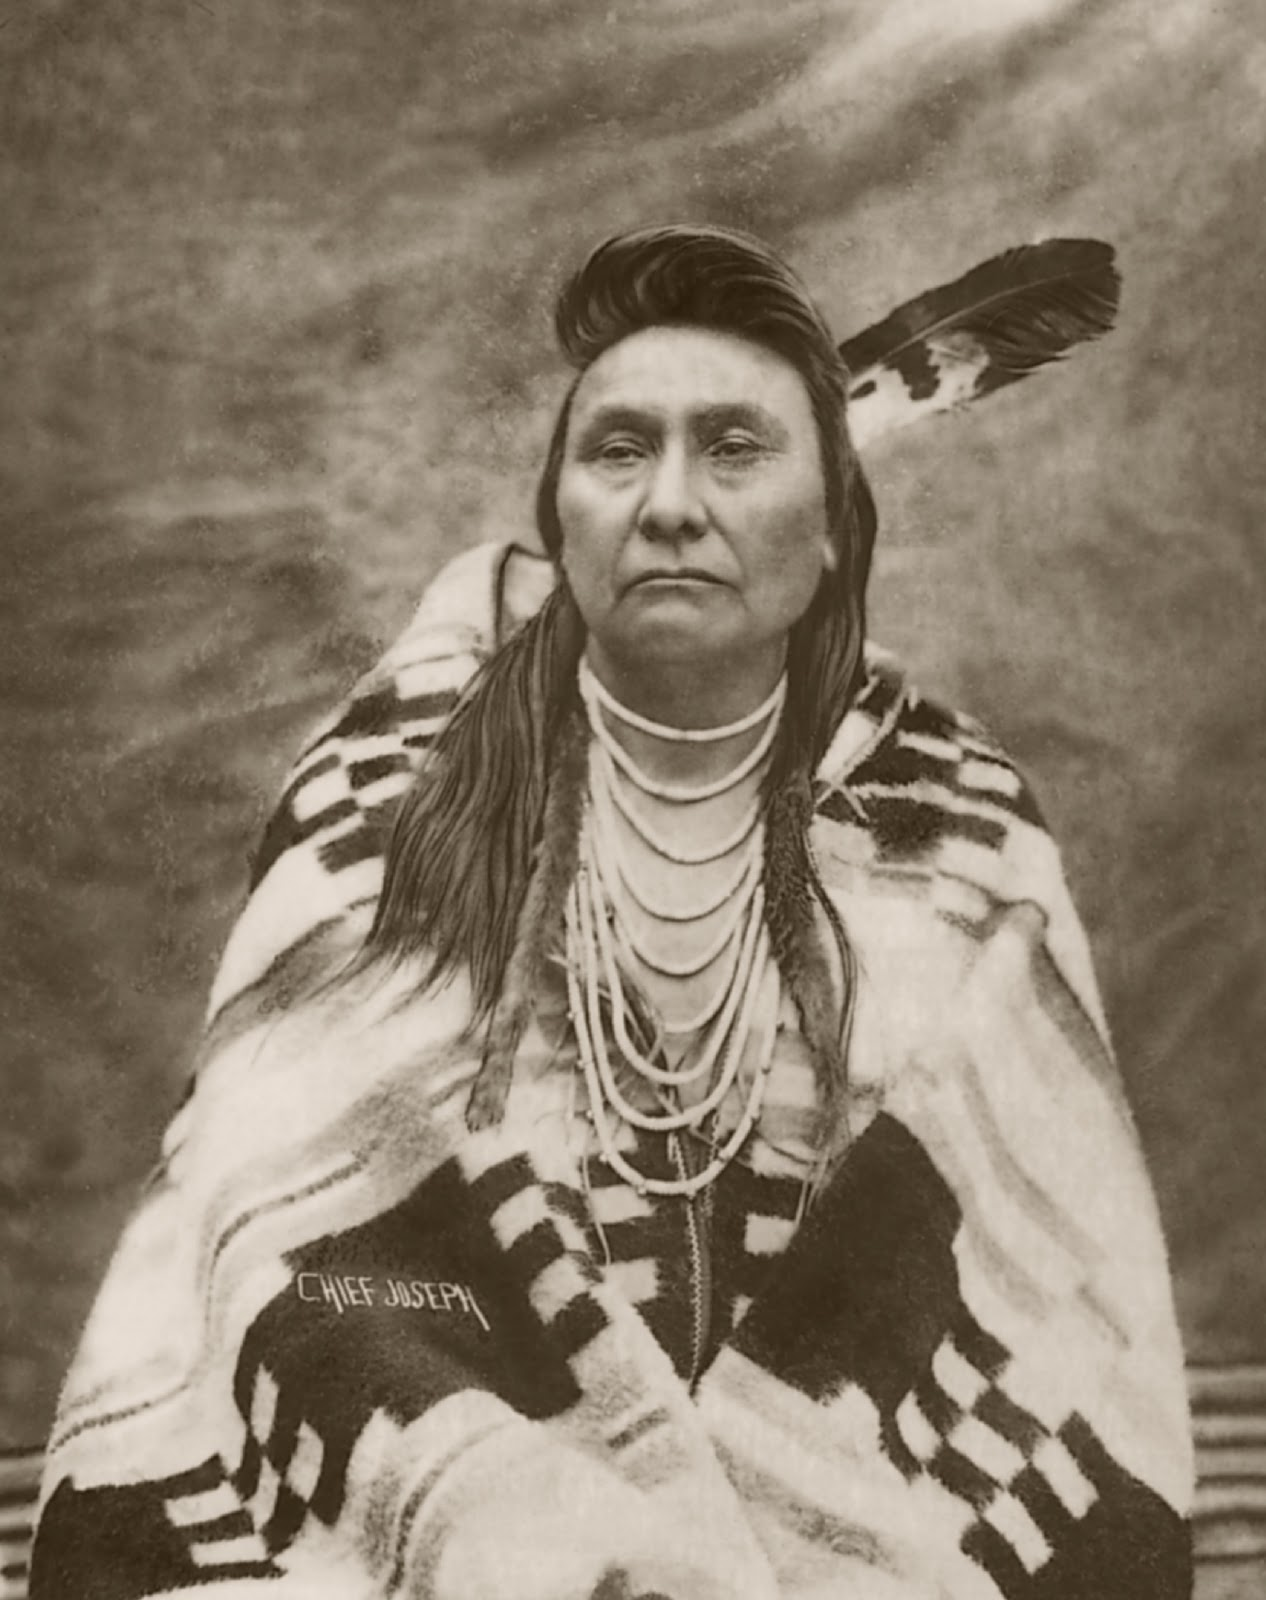 Chief Joseph Nez Perce